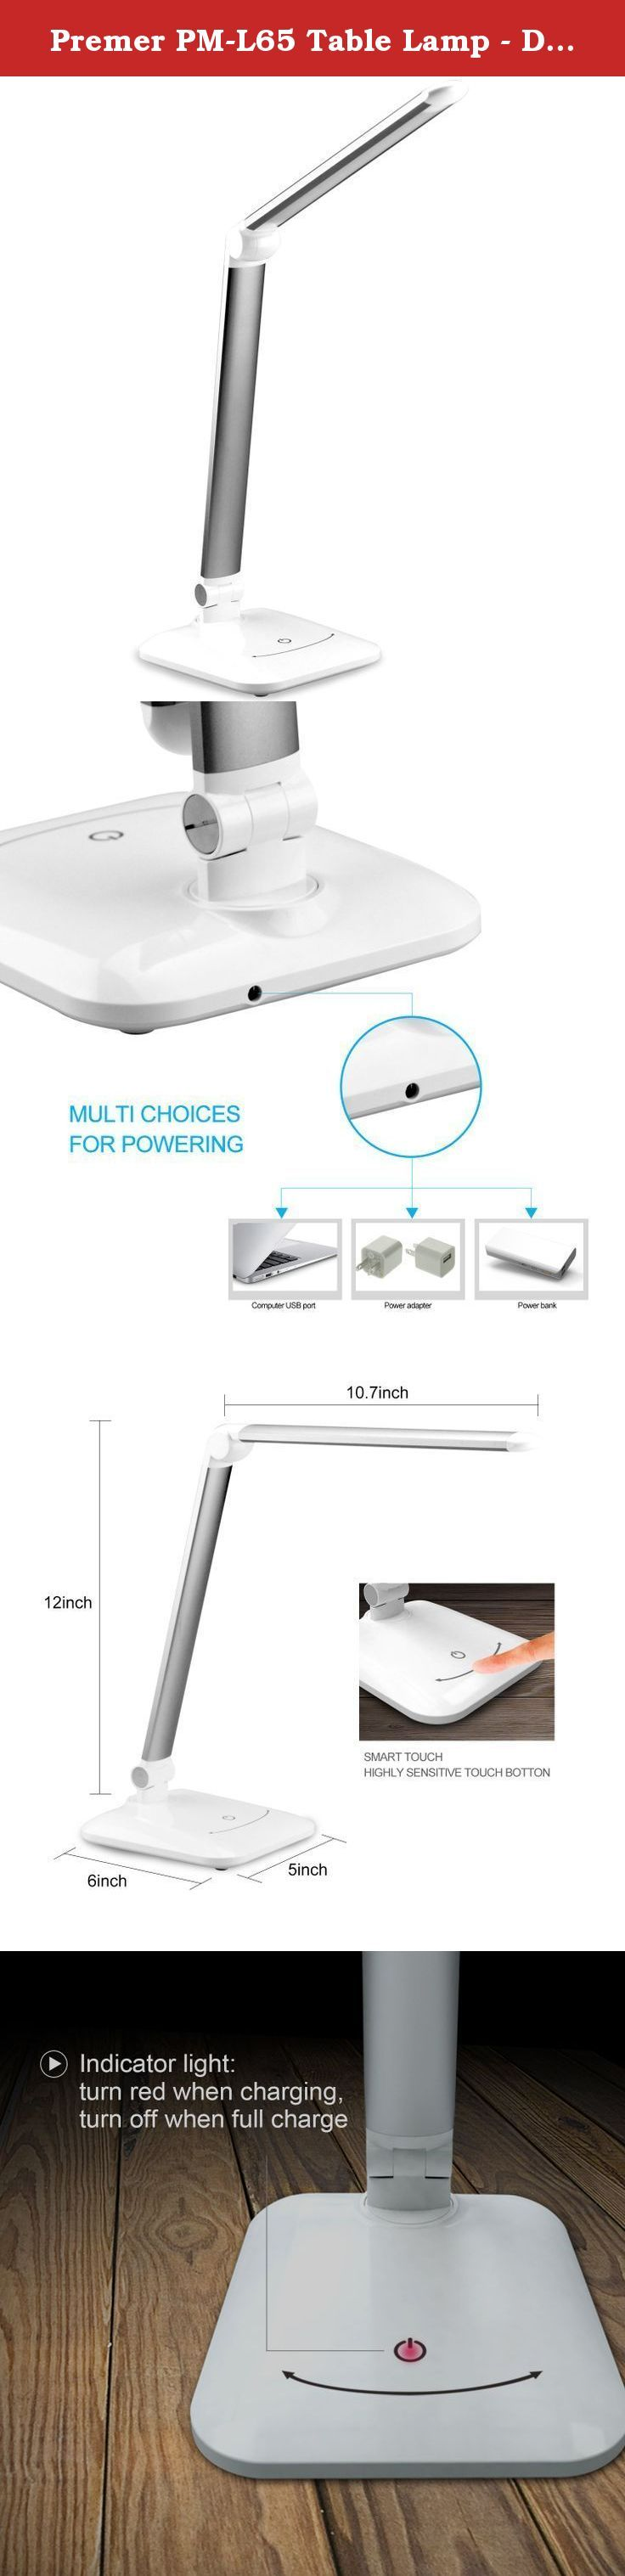 Premer PM-L65 Table Lamp - Dimmable Foldable LED Desk Lamp in 5 Brightness Levels With Charger for 8 hours use & Touch-sensitive Switch - 6W, Piano White. Premer PM-L65 is a new generation of eco-friendly LED lighting for your home or office. As an LED it consumes 75% less power than traditional incandescent lights, while providing the same amount of light. This means a smaller electricity bill and a smaller carbon footprint. * Eye Protection - No flickering, no dark area and no ghosting...